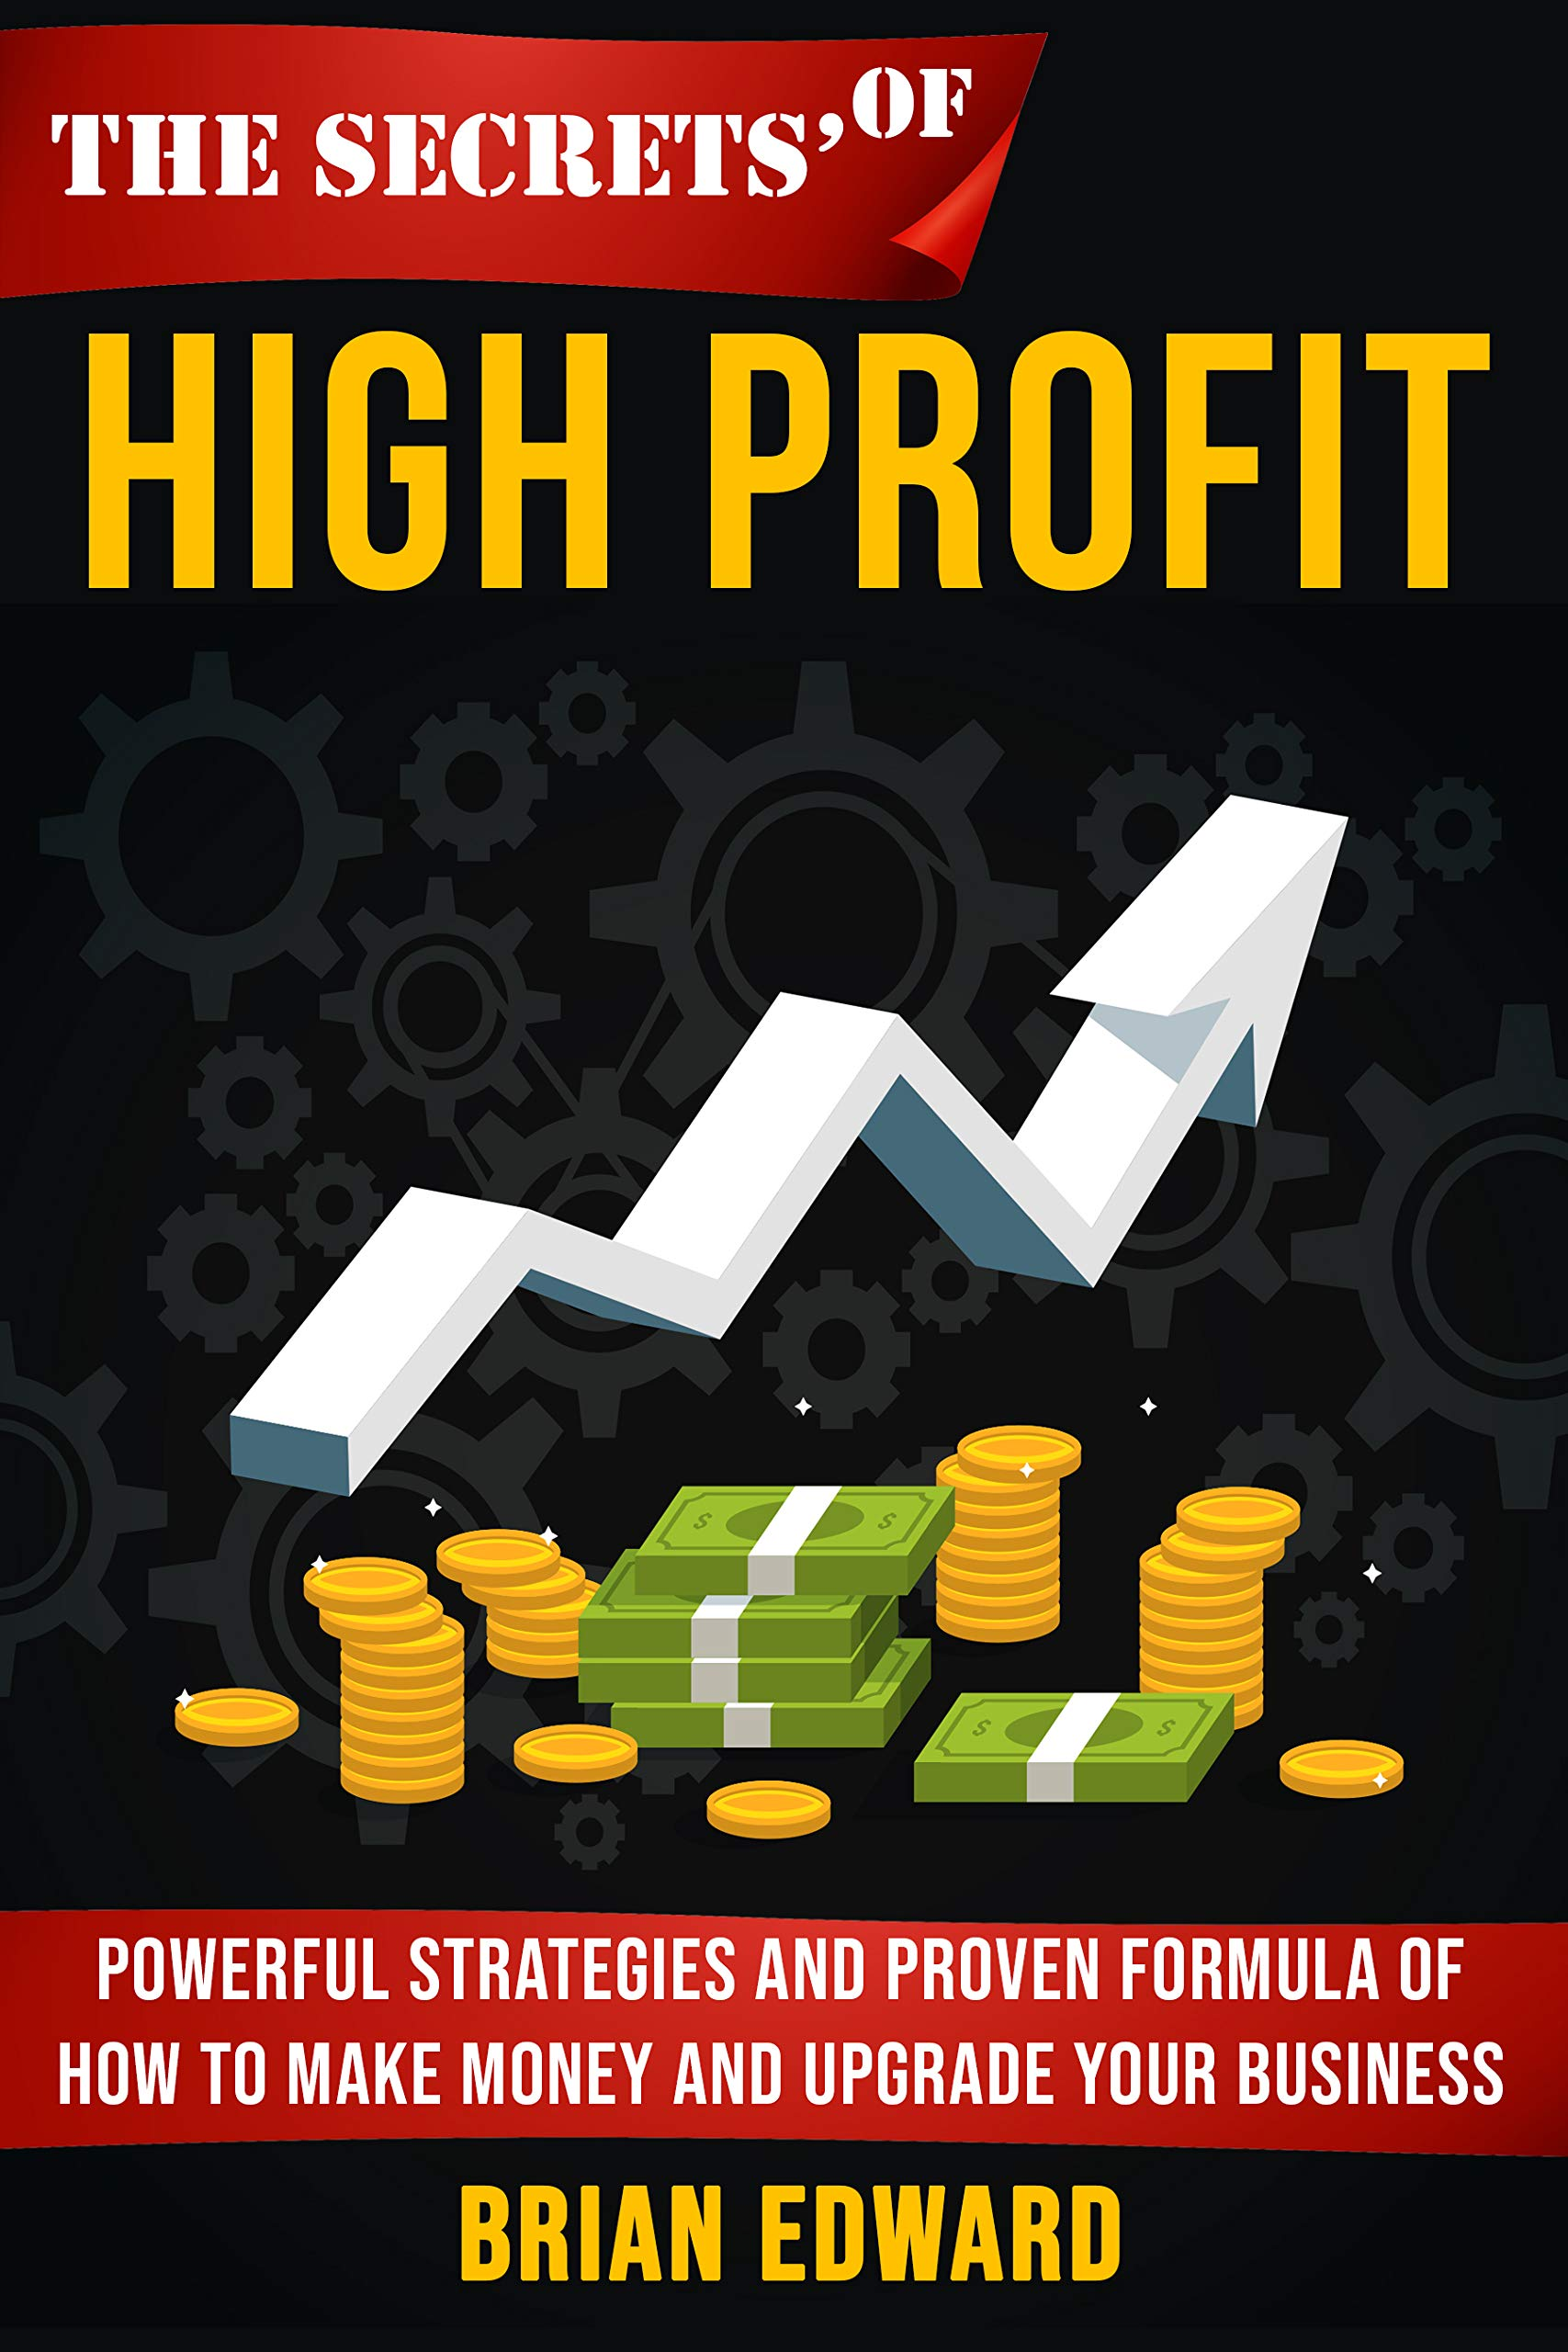 The Secrets Of High Profit: Powerful strategies and proven formula of how to make money and upgrade your business